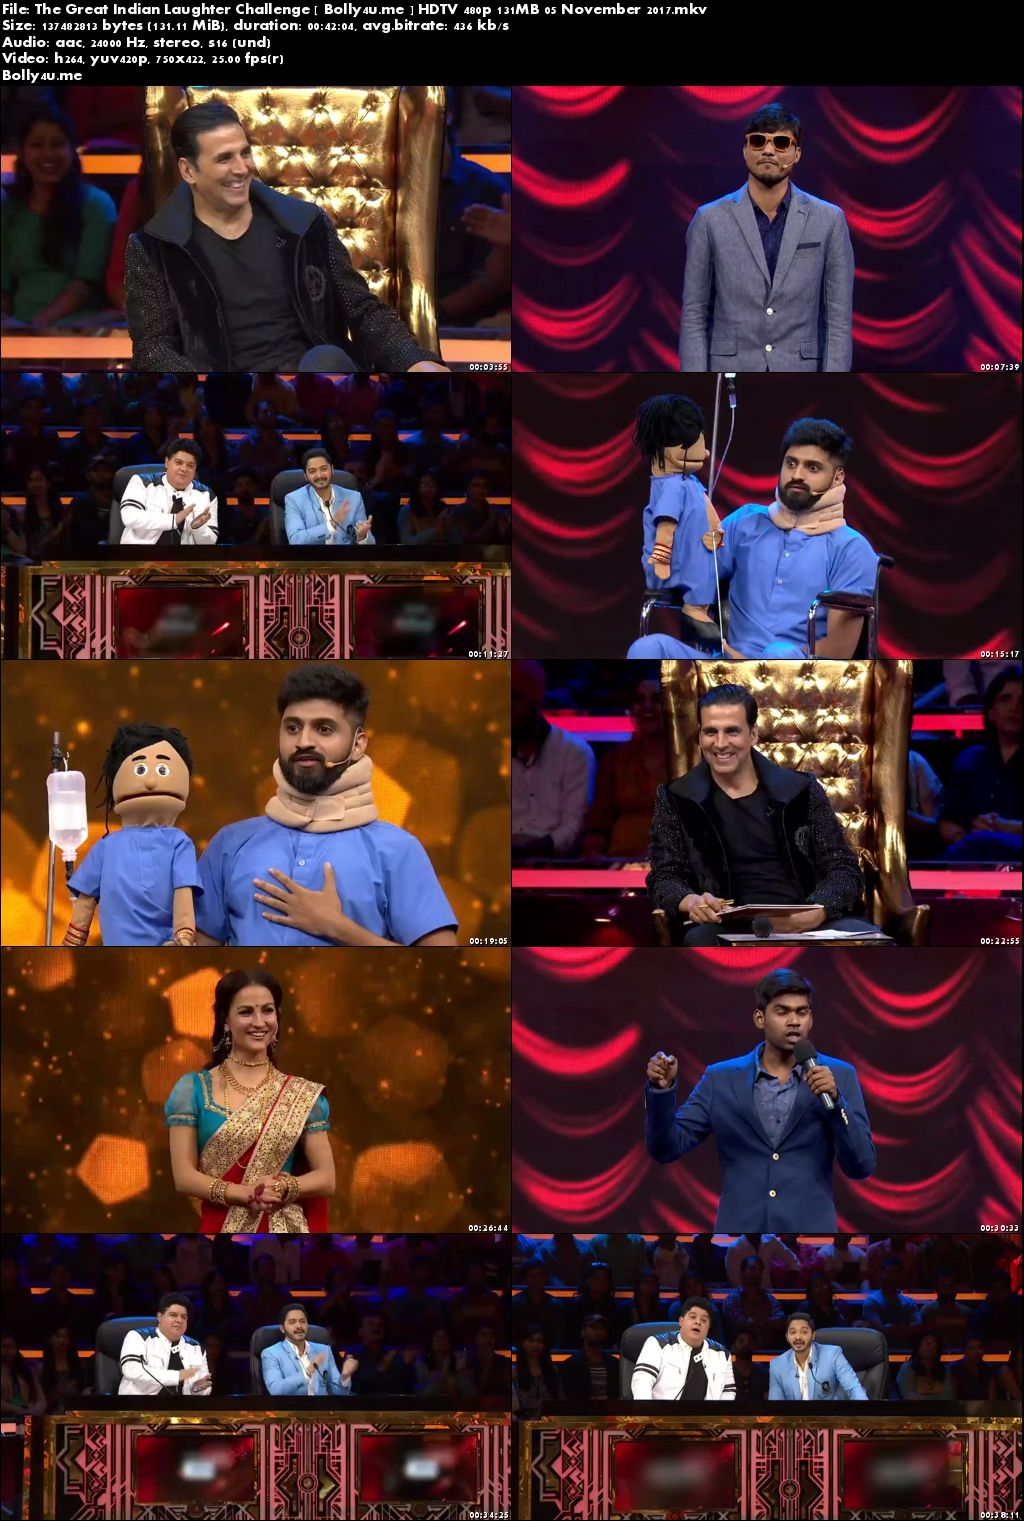 The Great Indian Laughter Challenge HDTV 480p 130MB 05 November 2017 Download